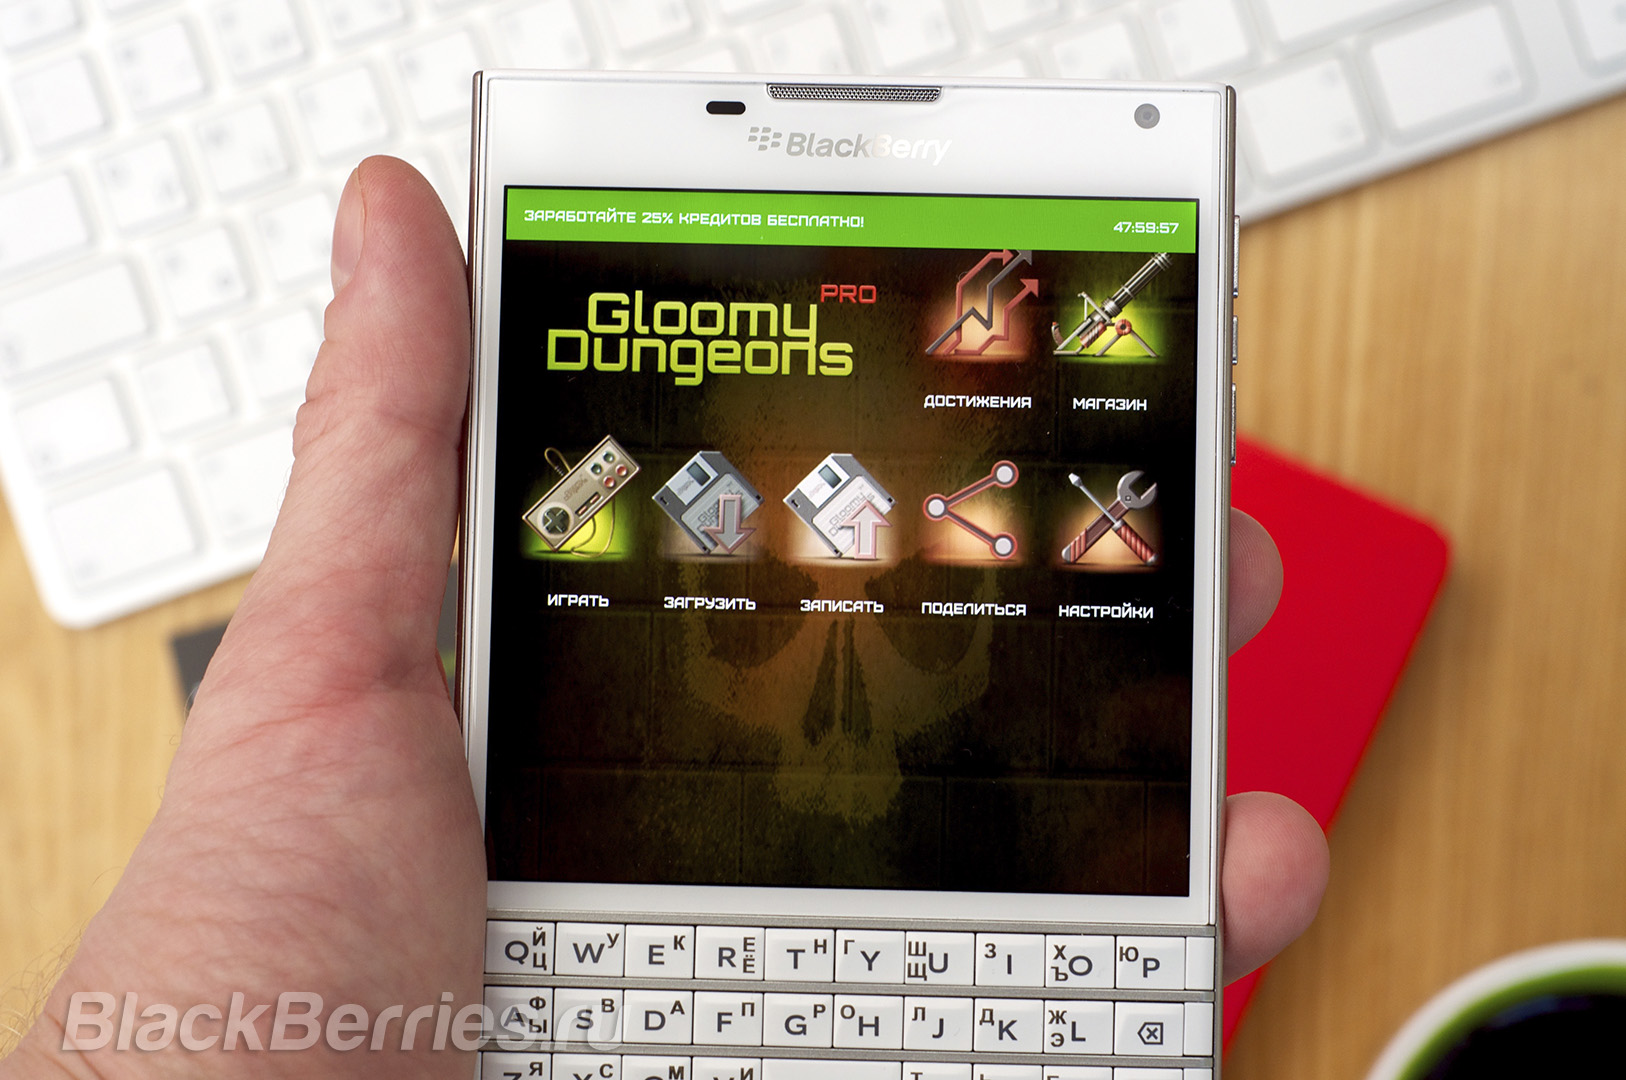 BlackBerry-Passport-Apps-31-07-18